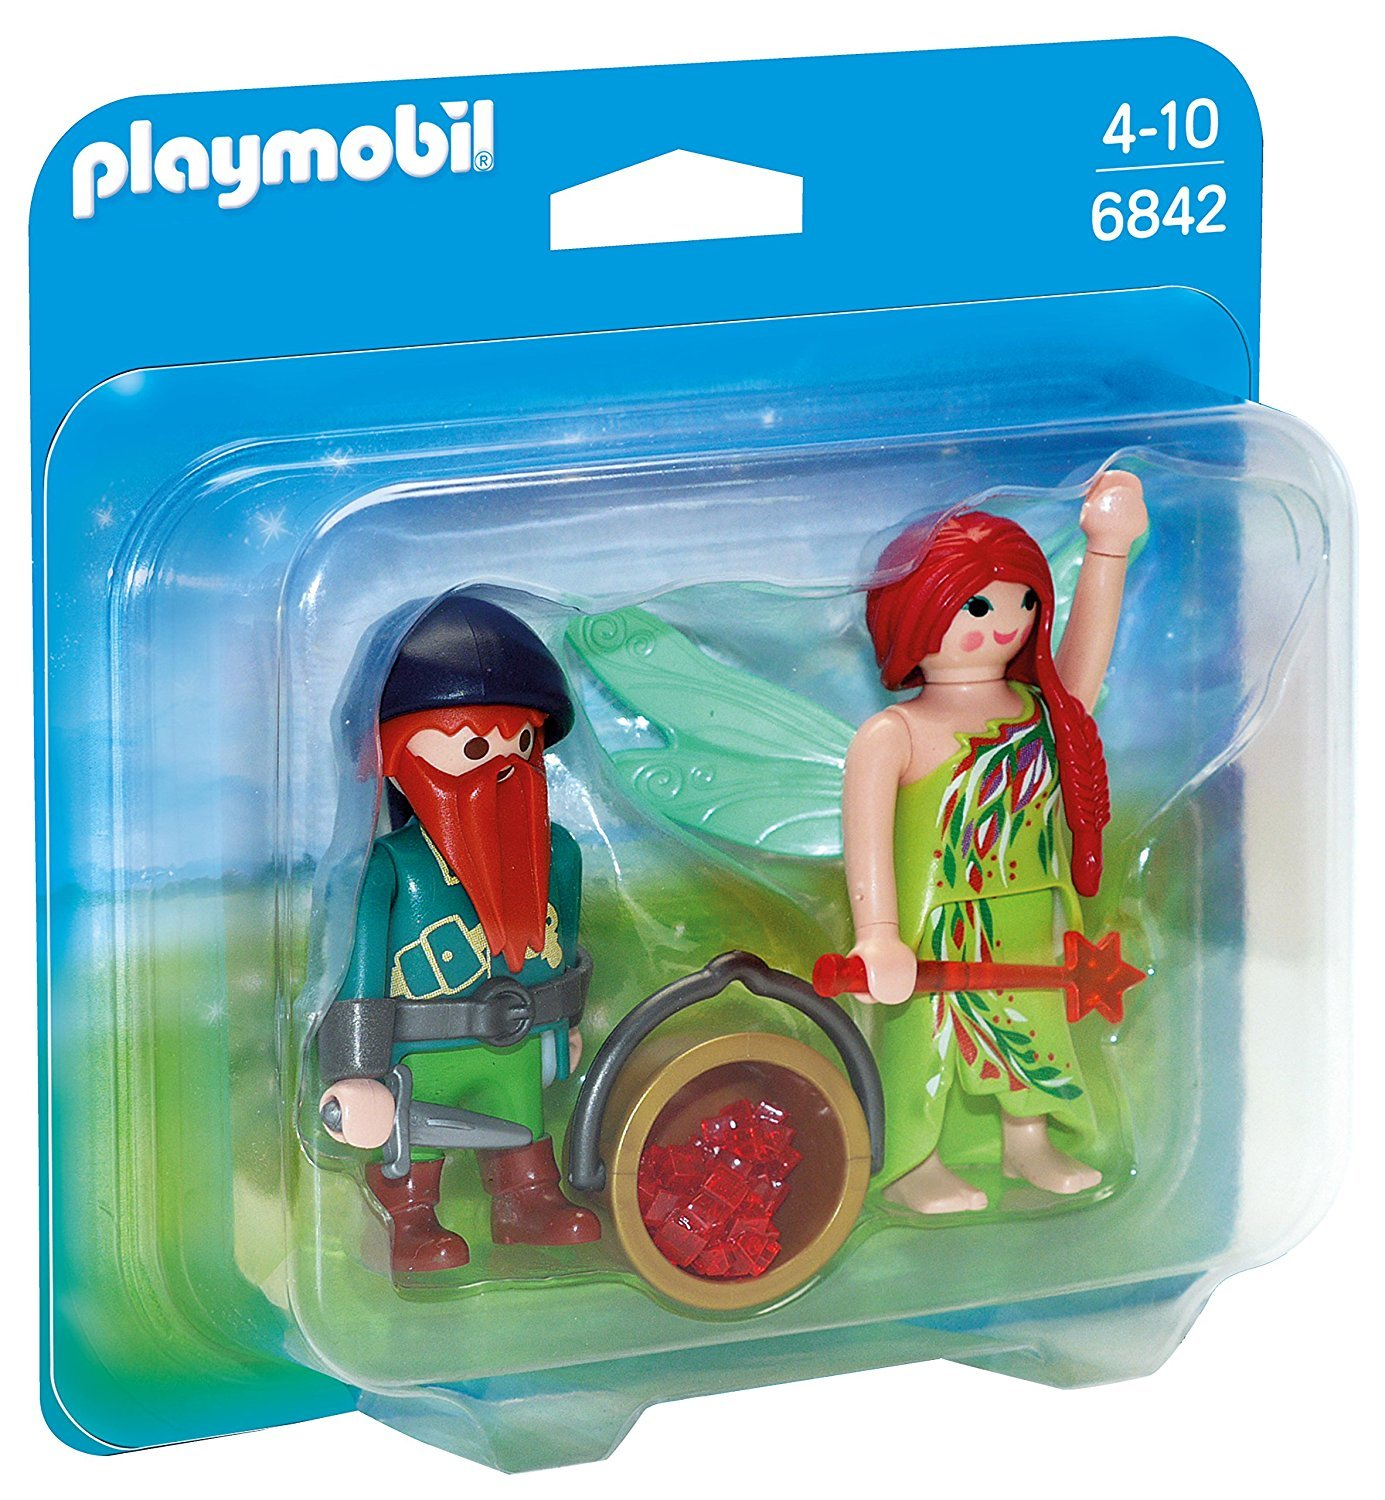 Playmobil: Elf and Dwarf Duo Pack image